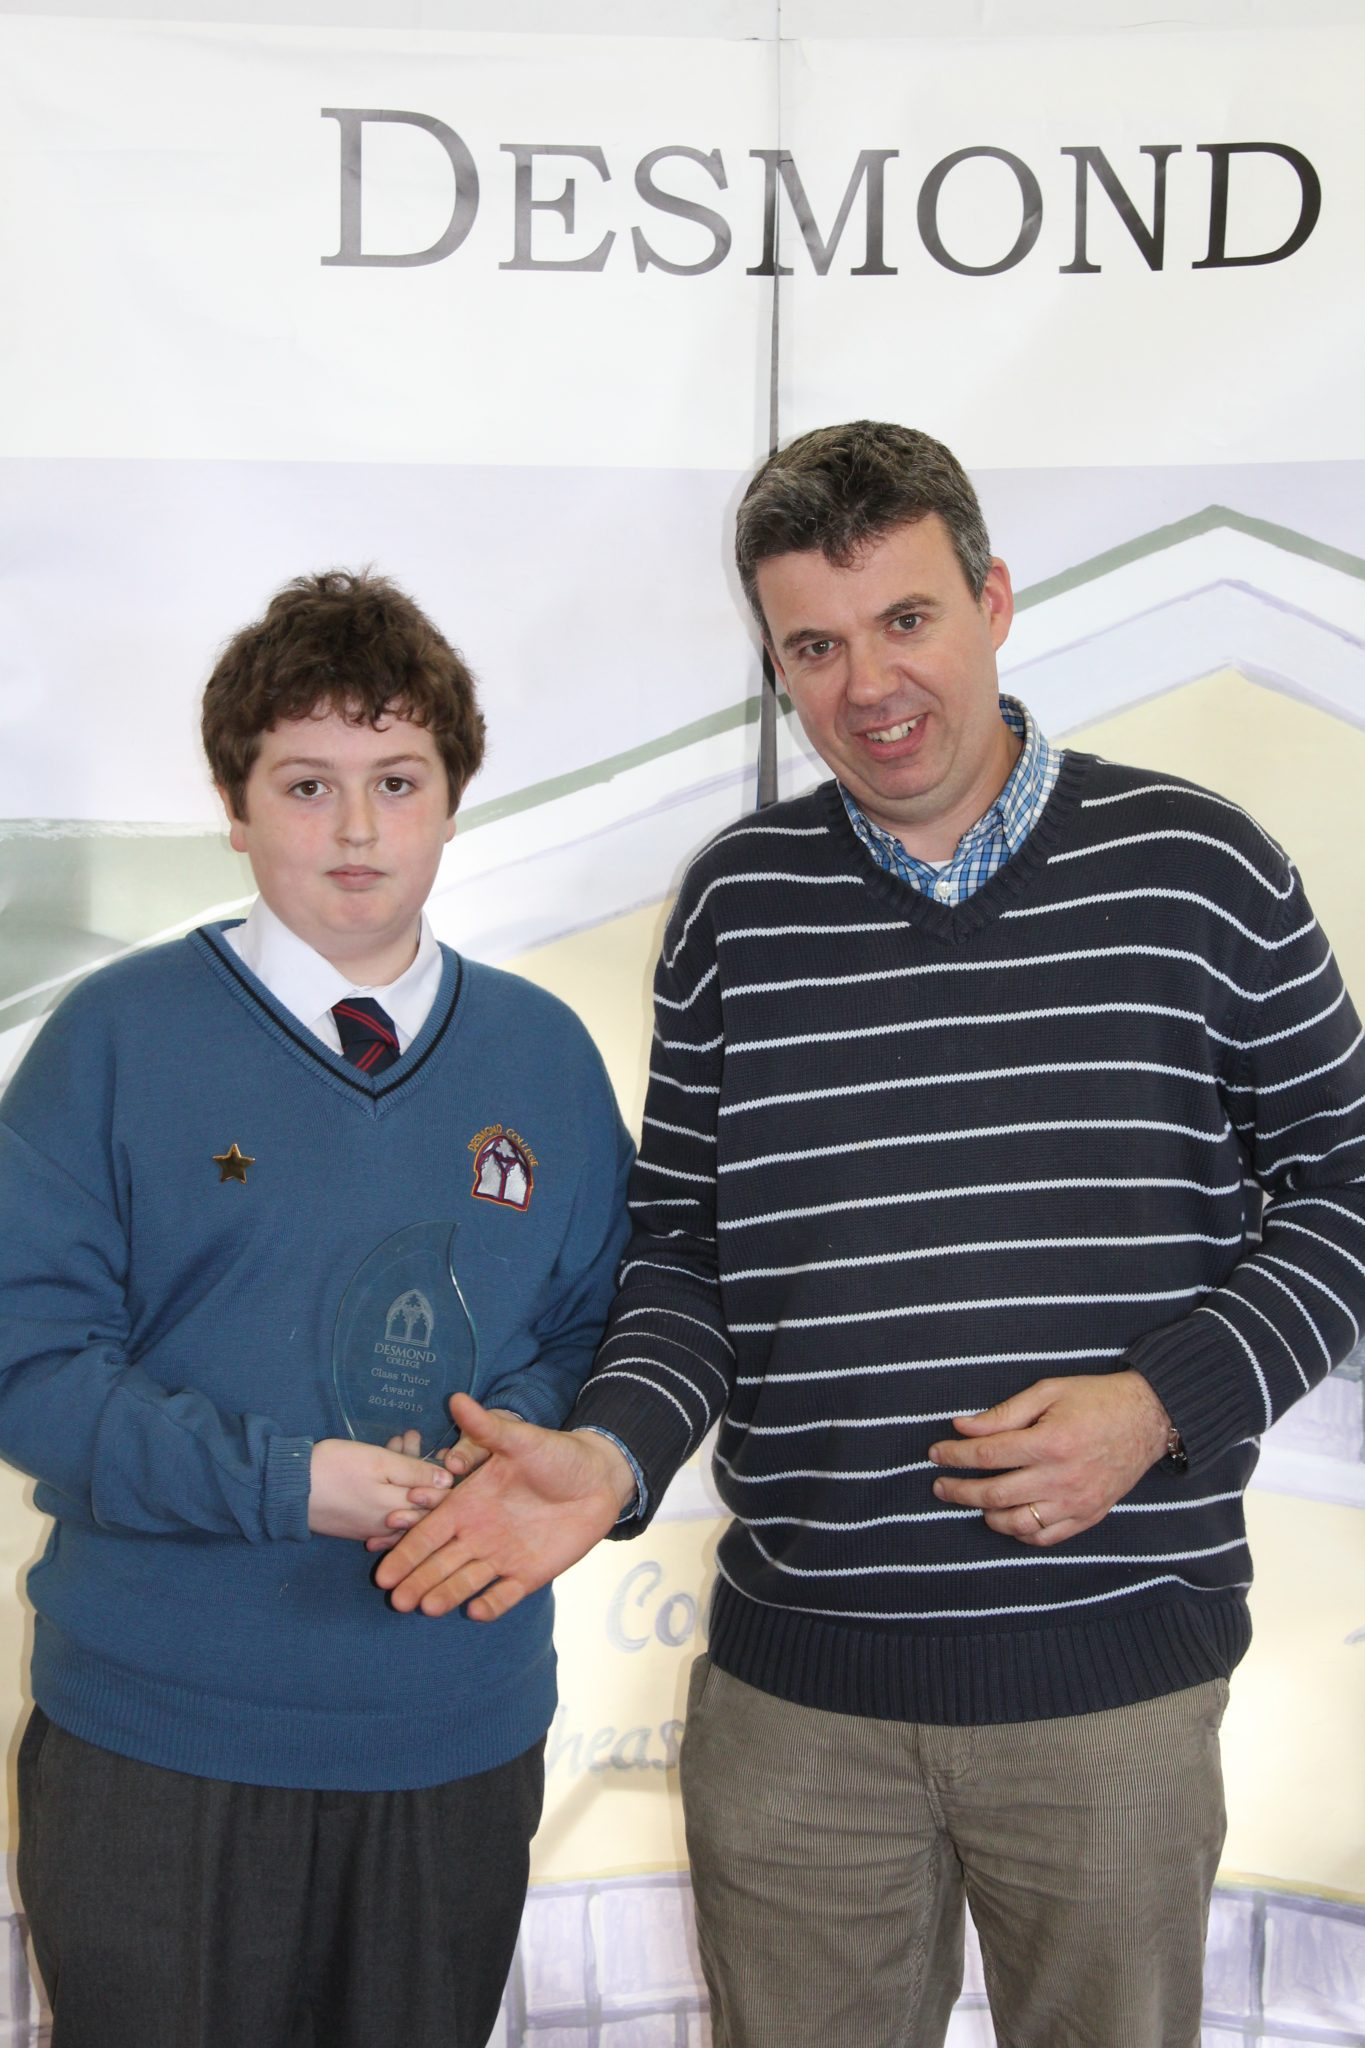 Desmond College Student Awards: May 2015: TUTOR AWARDS 1st Year : Mr Lowe with Evan Condon